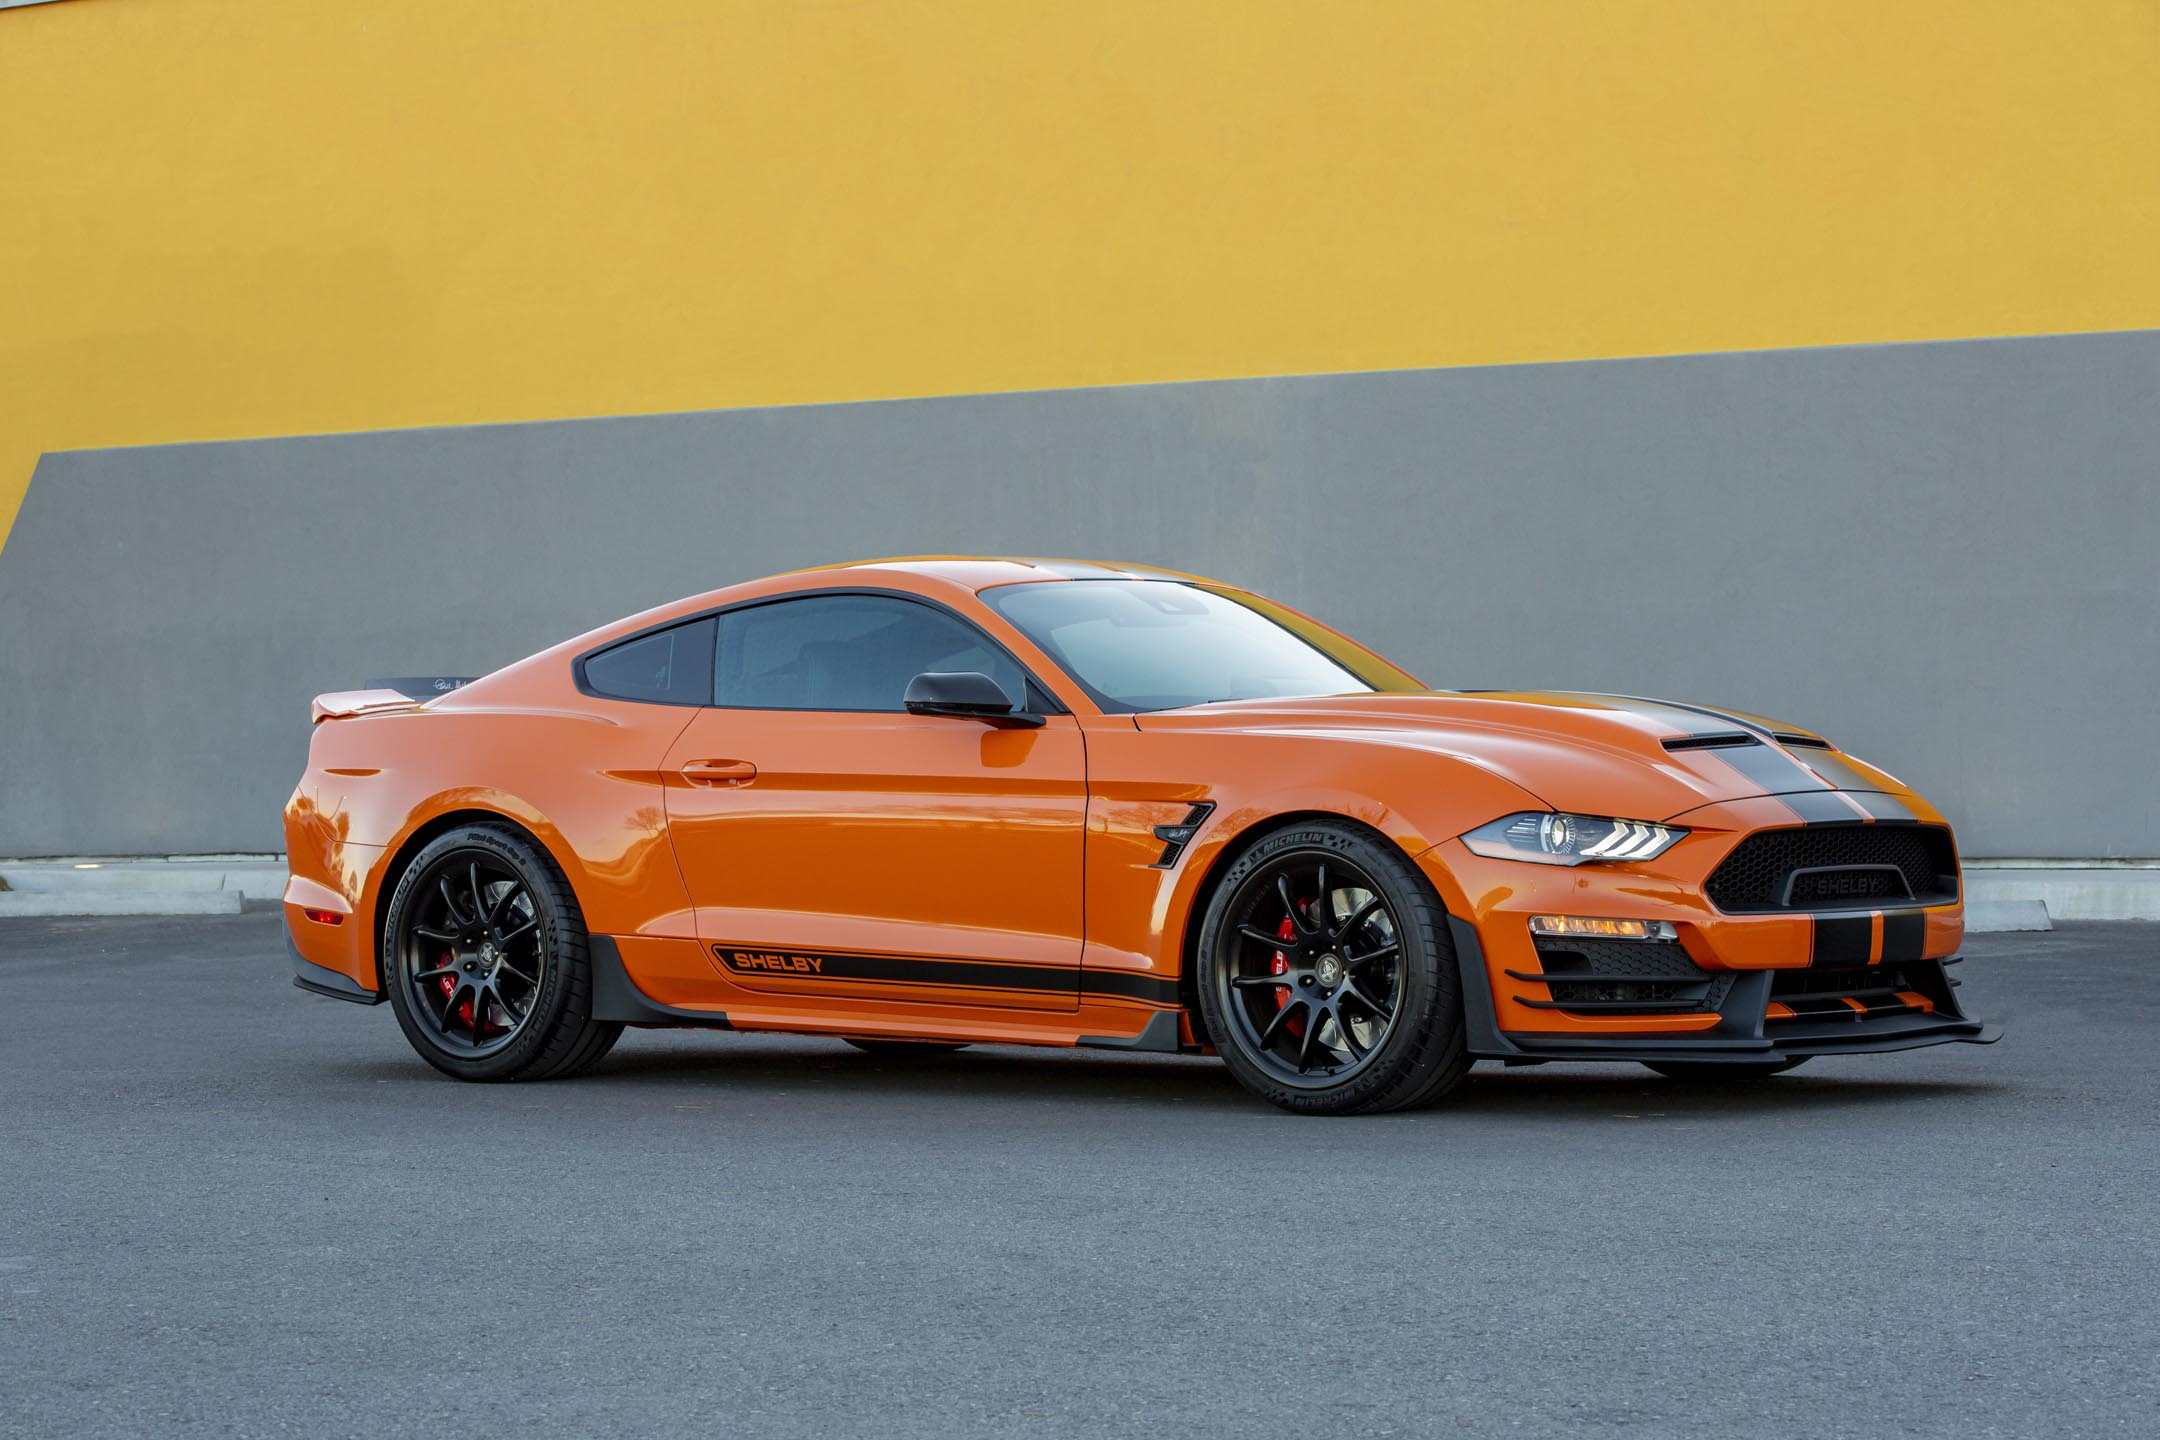 Ford Mustang Carroll Shelby Signature Series - 2020 - front side-face / profil avant